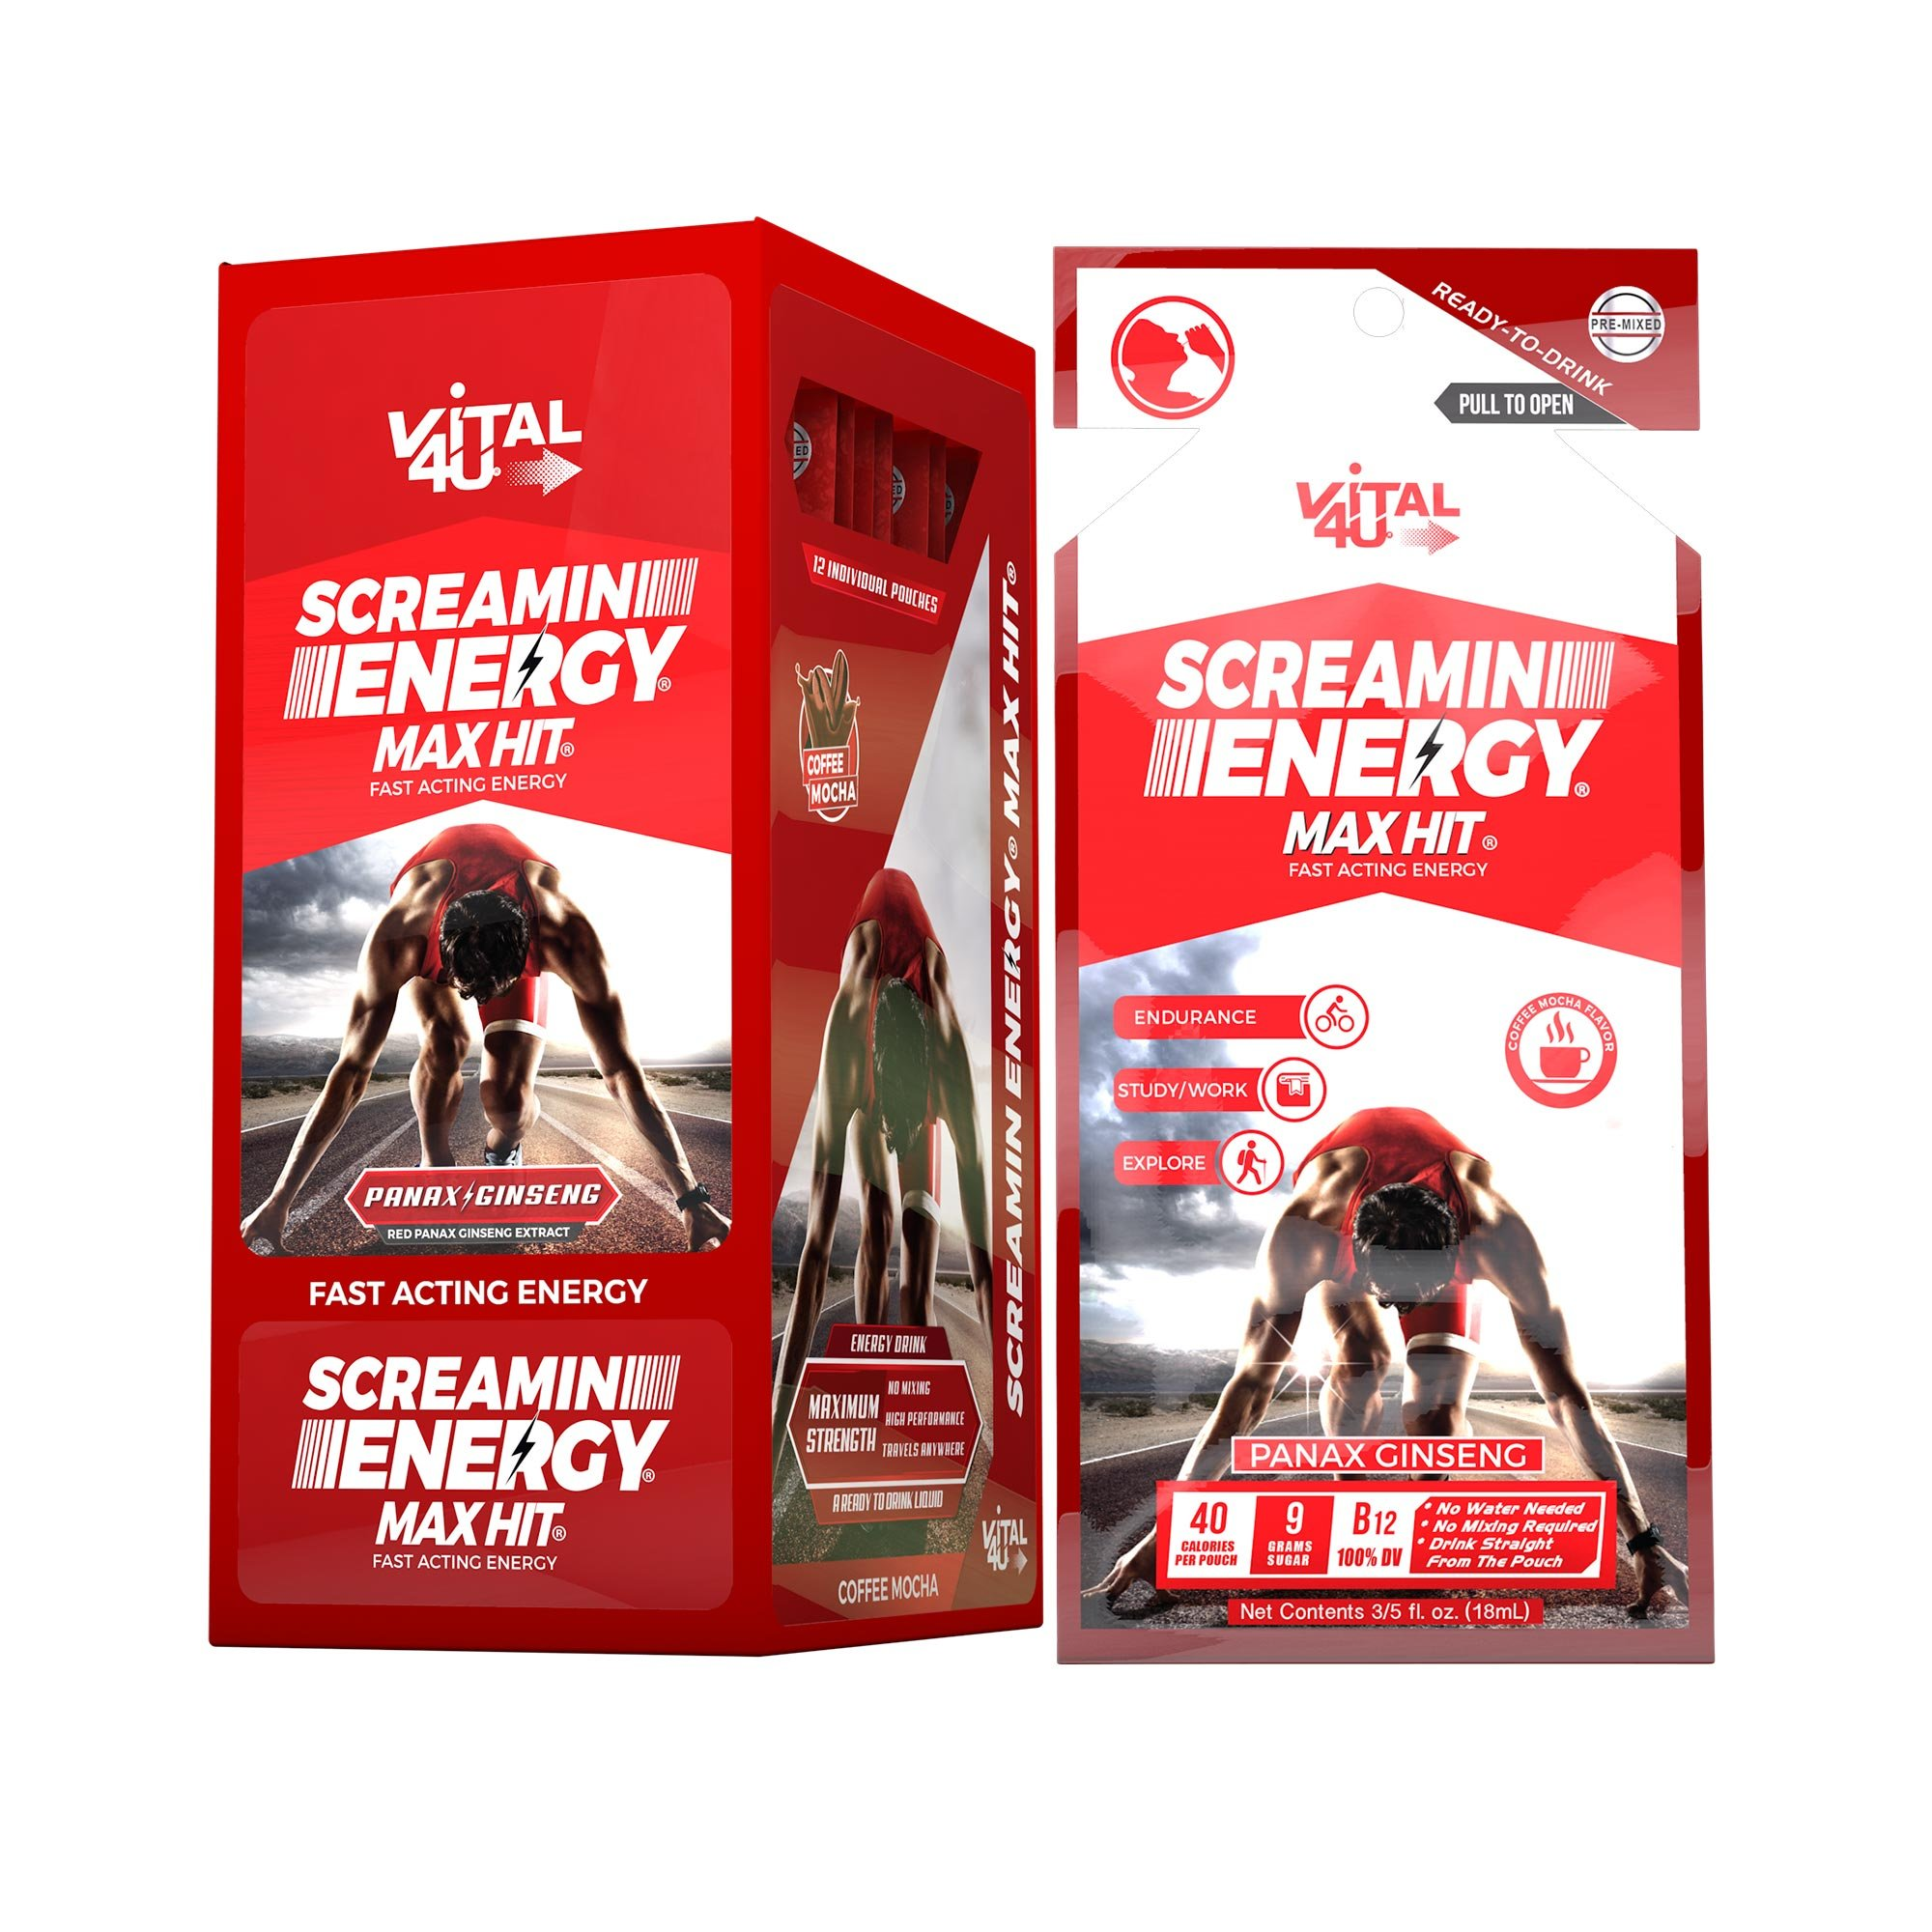 Screamin Energy Max Hit Maximum Strength Energy Drink with Panax Ginseng, Caffeine and Vitamins - Coffee Mocha Flavor, 24 Count by VITAL 4U